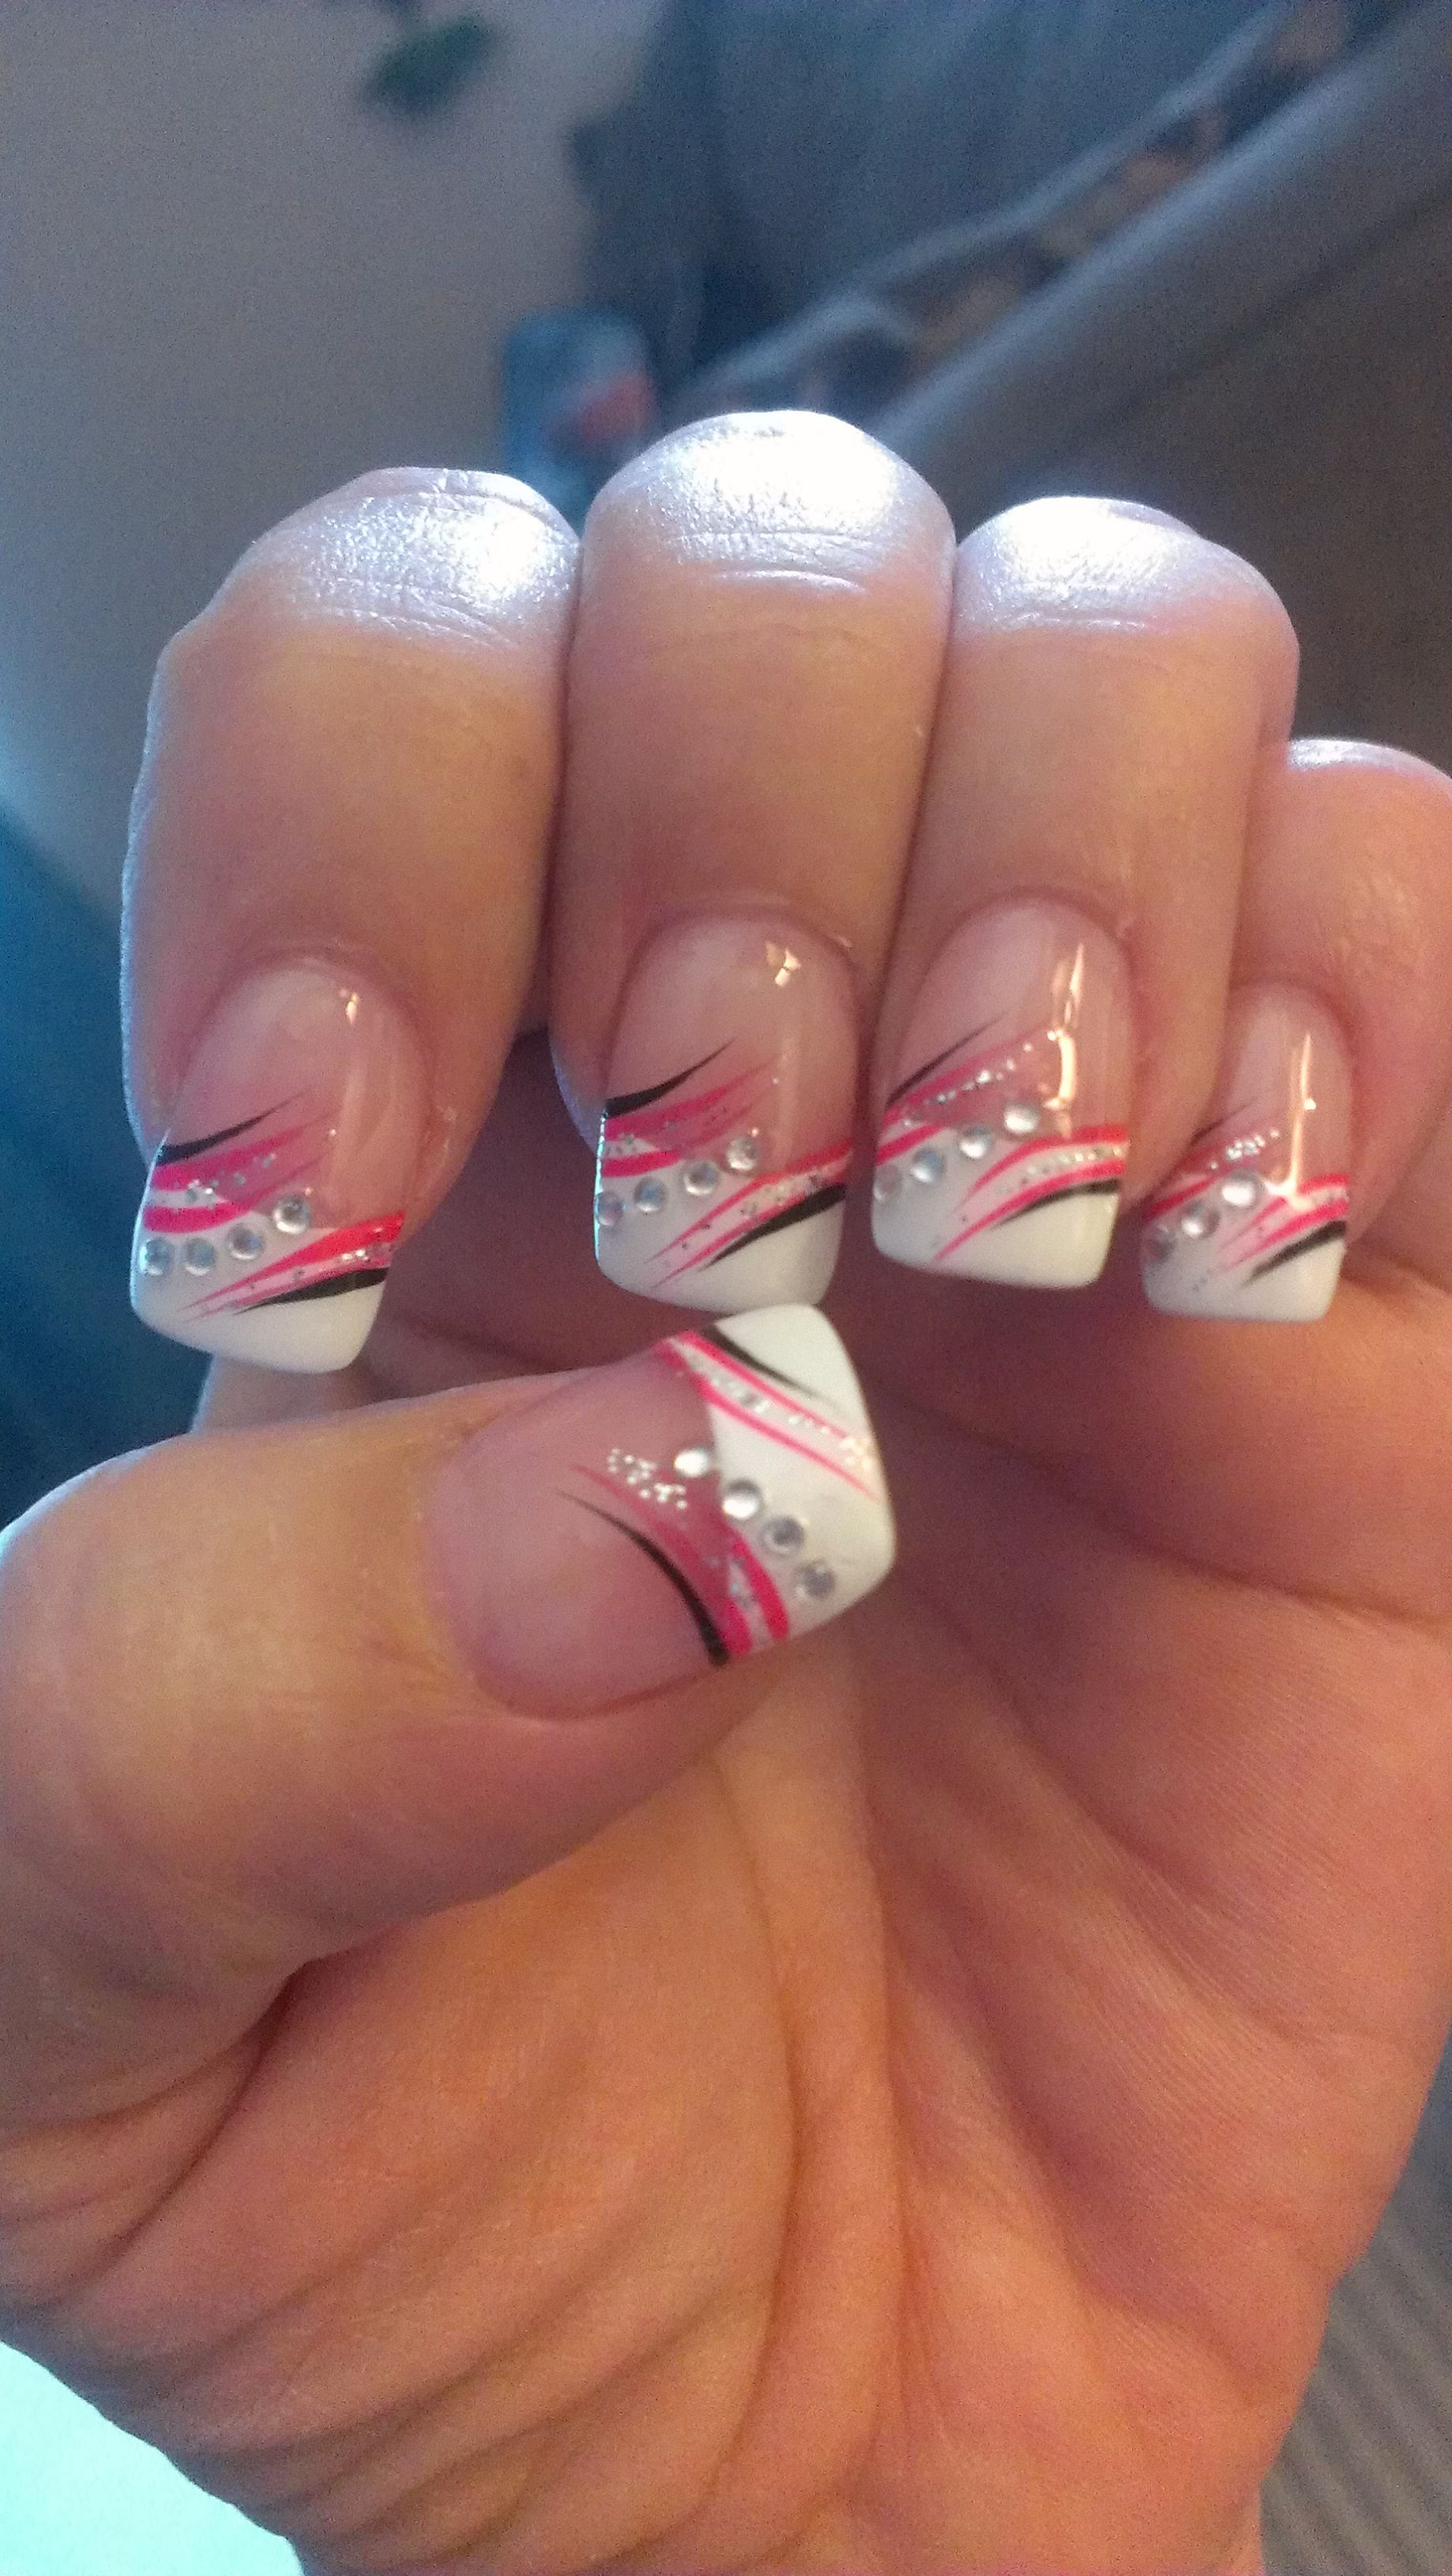 Moderne Nägel How To Make Nails Grow Faster And Stronger Most Effective